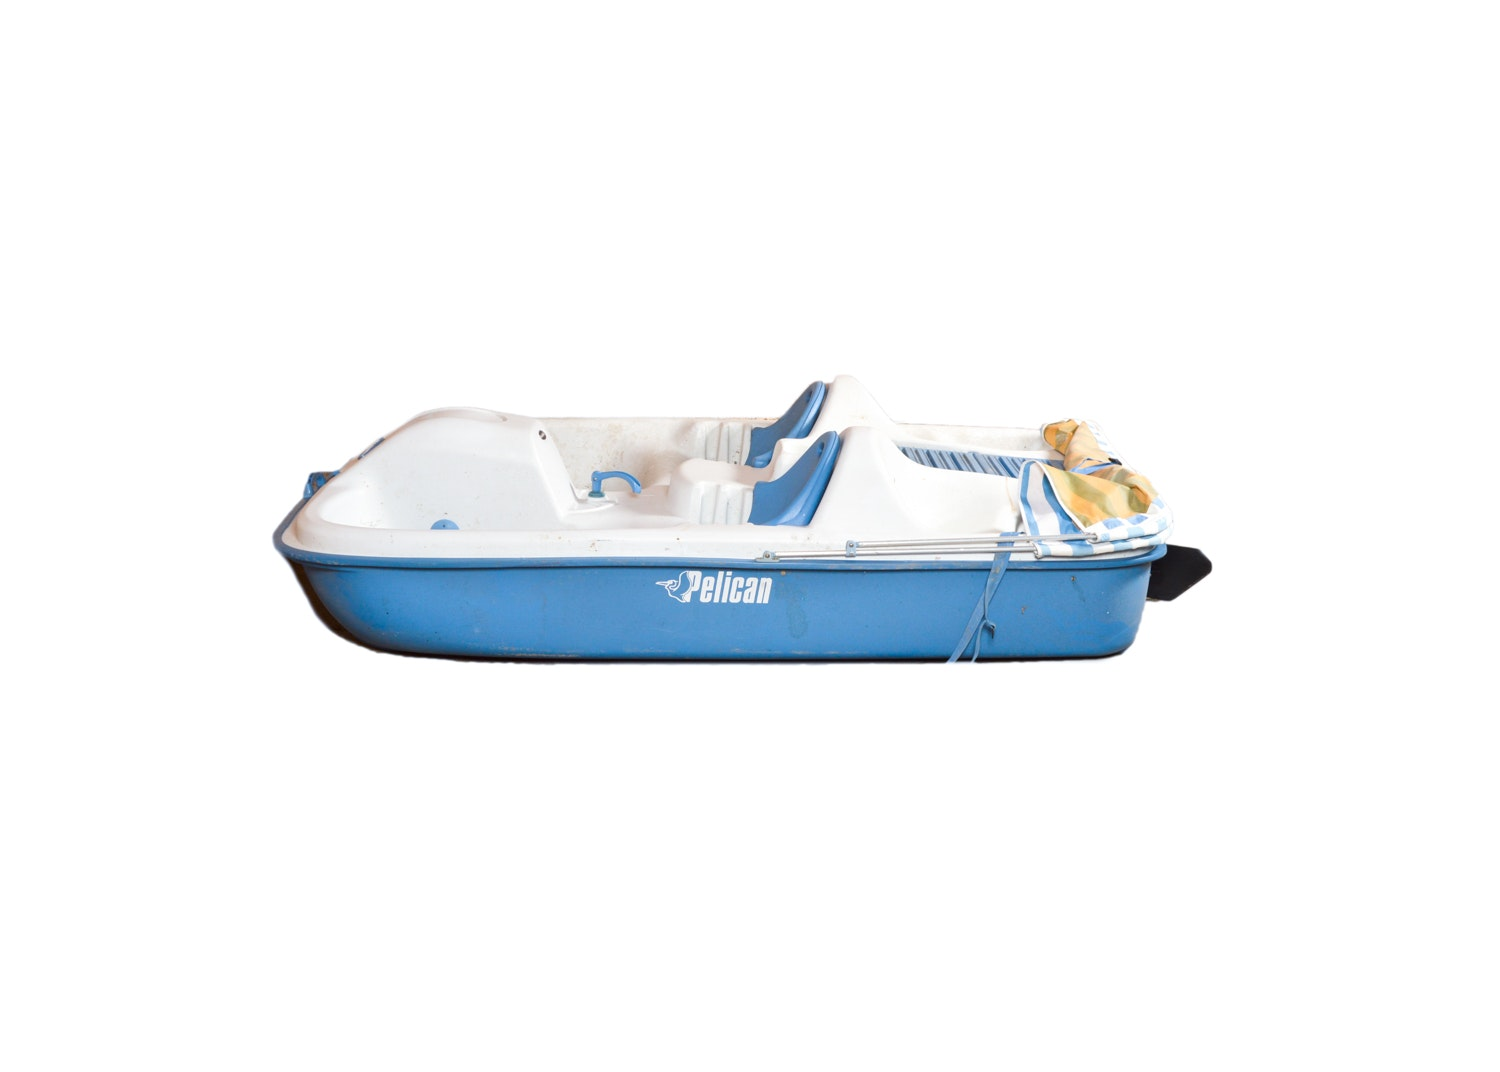 Pelican Ram-X Four-Person Pedal Boat with Retractable Awning